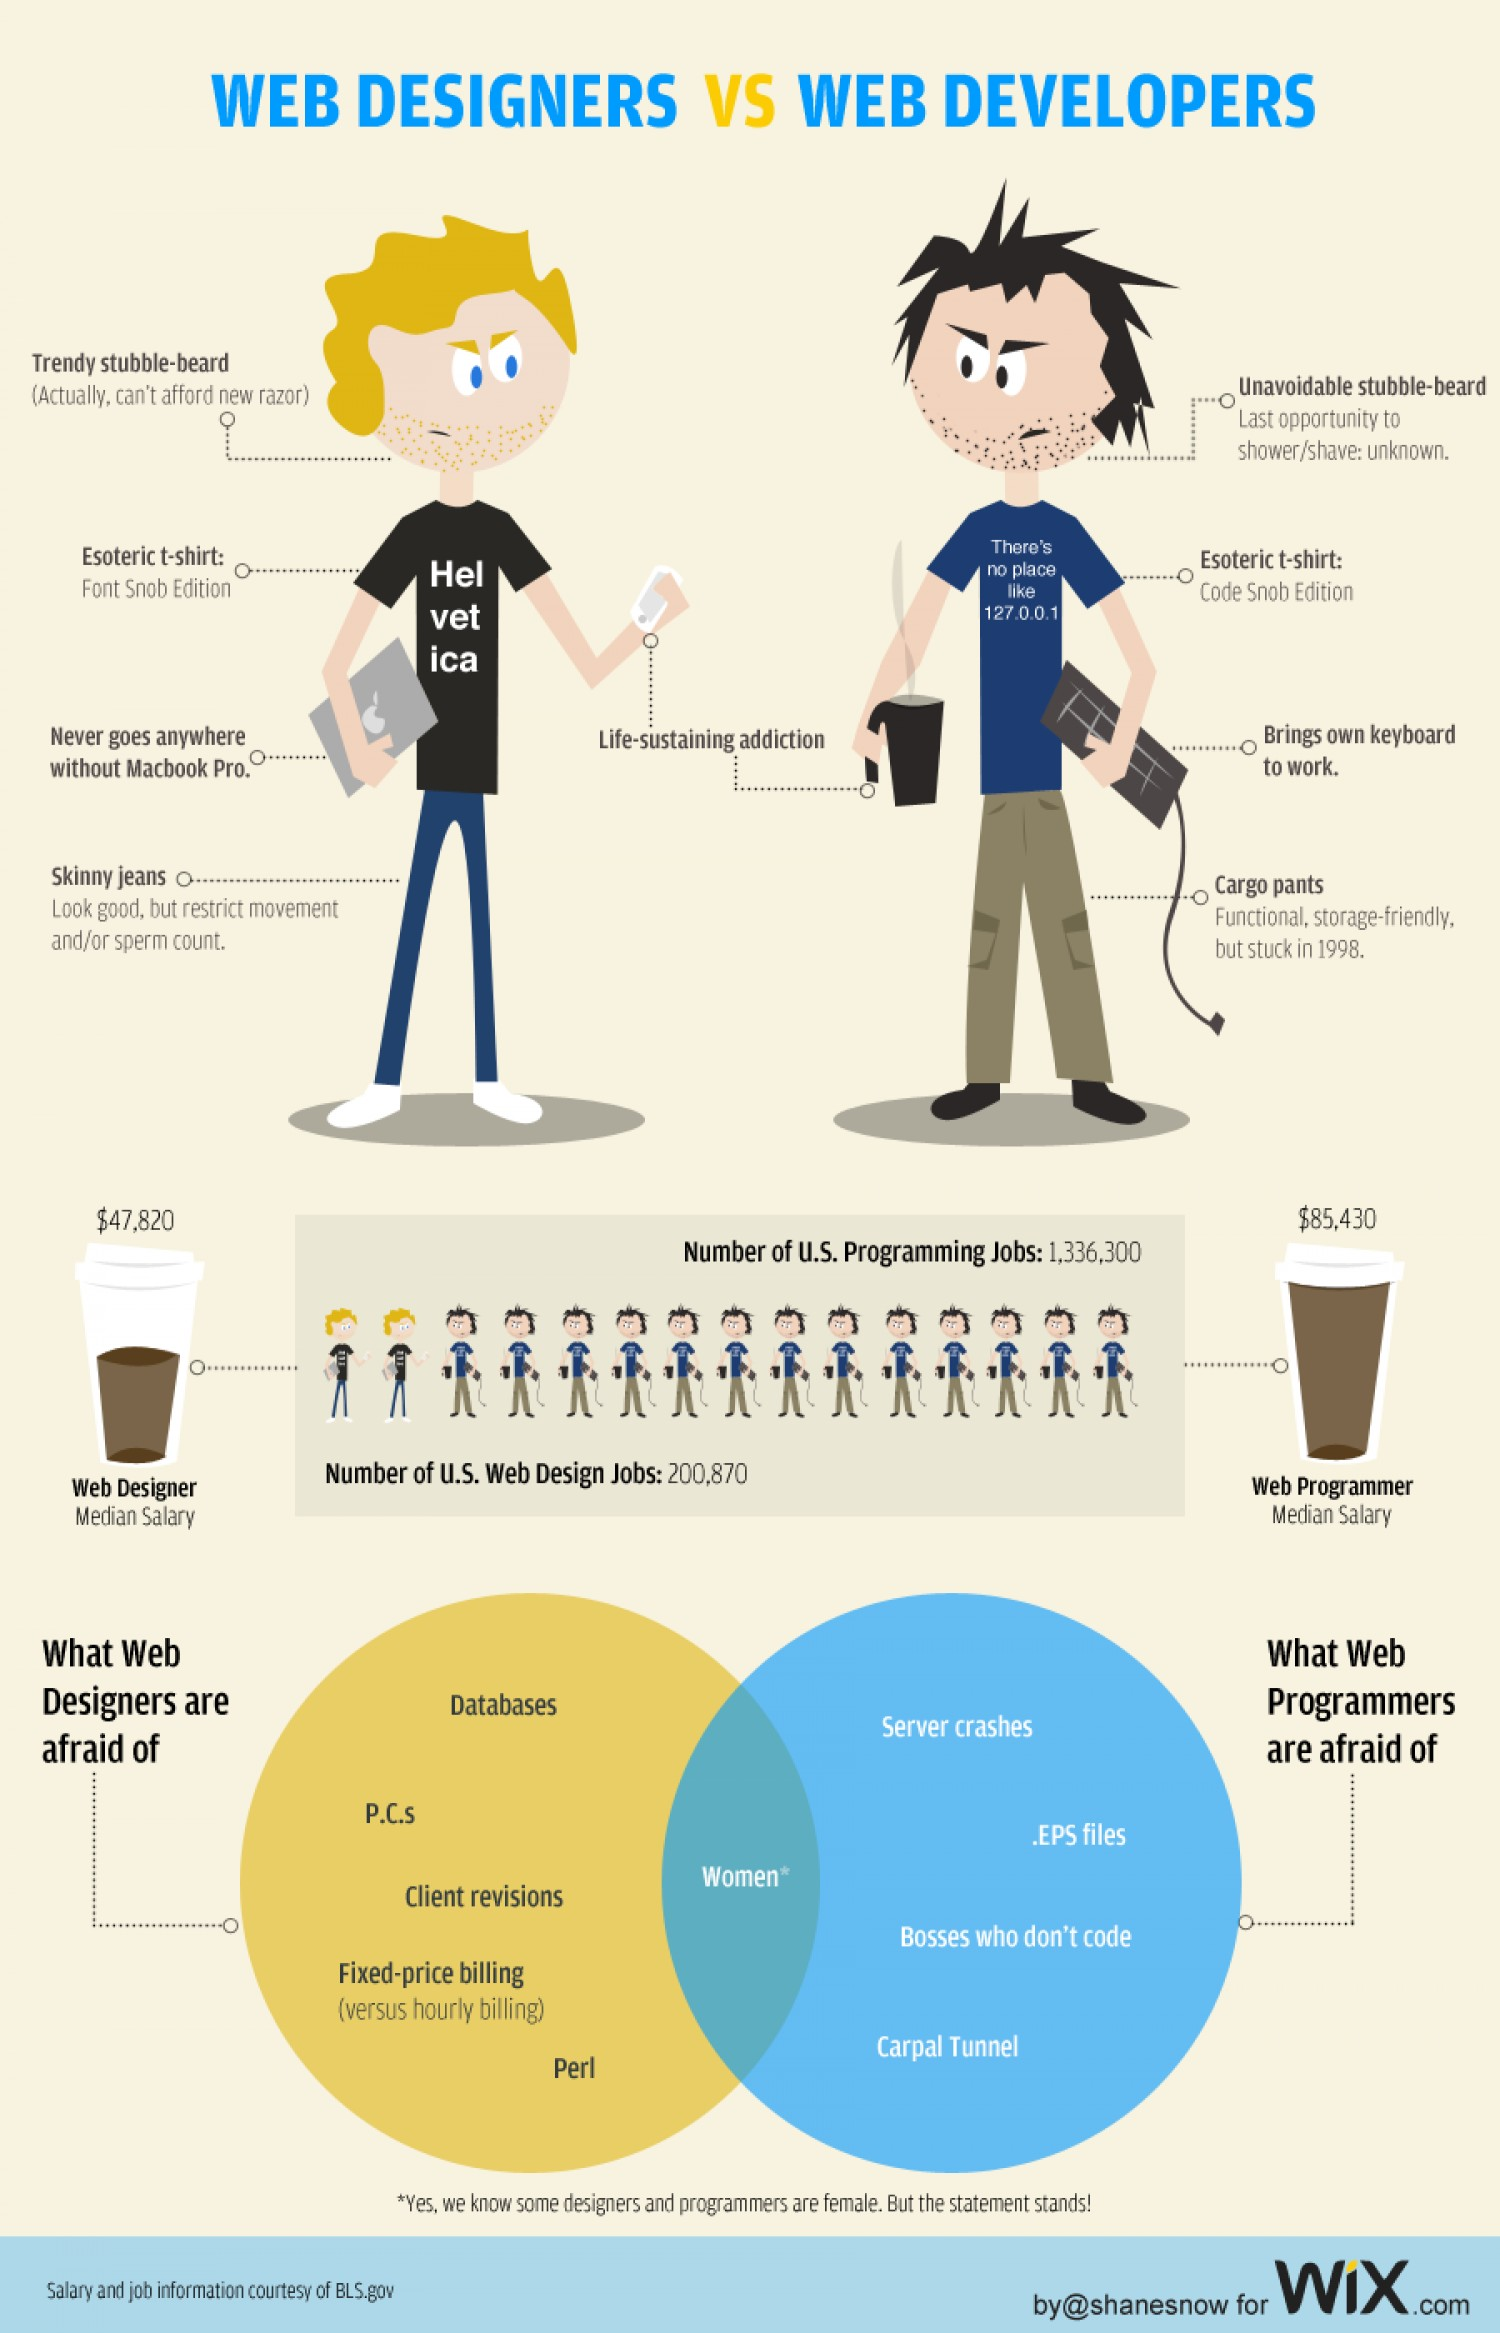 web-designers-vs-web-developers_50290a6458cbf_w1500